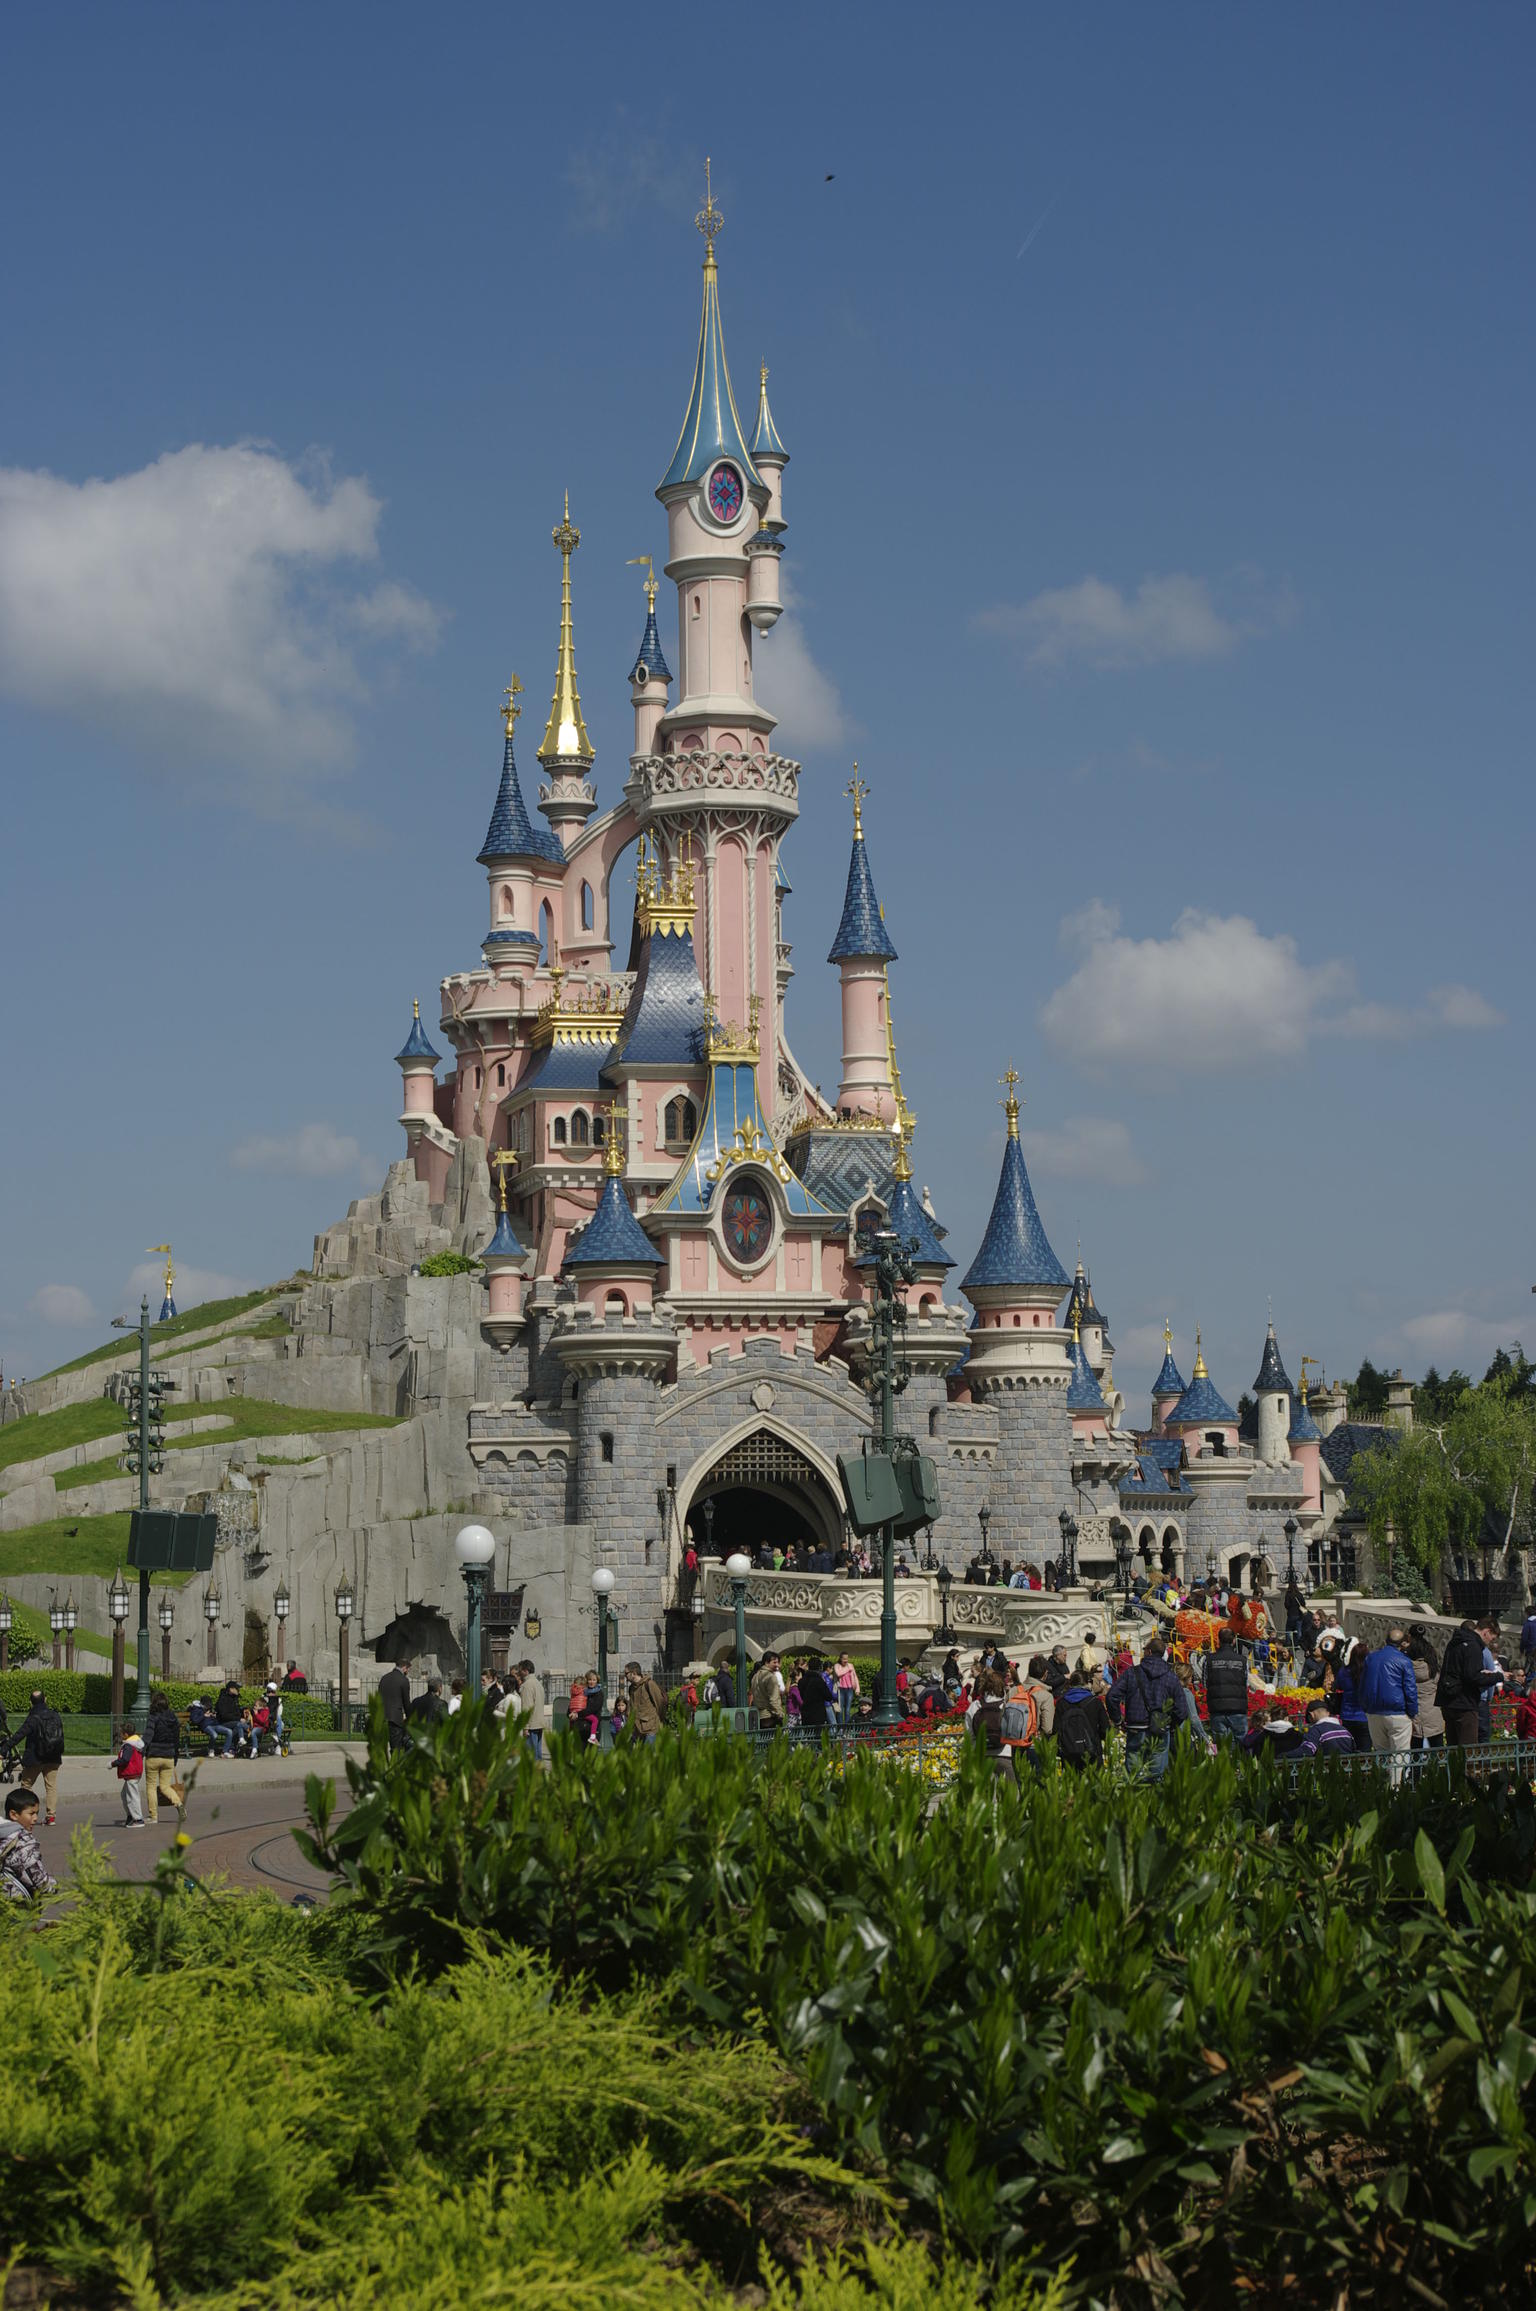 An unforgettable trip to Disneyland Paris